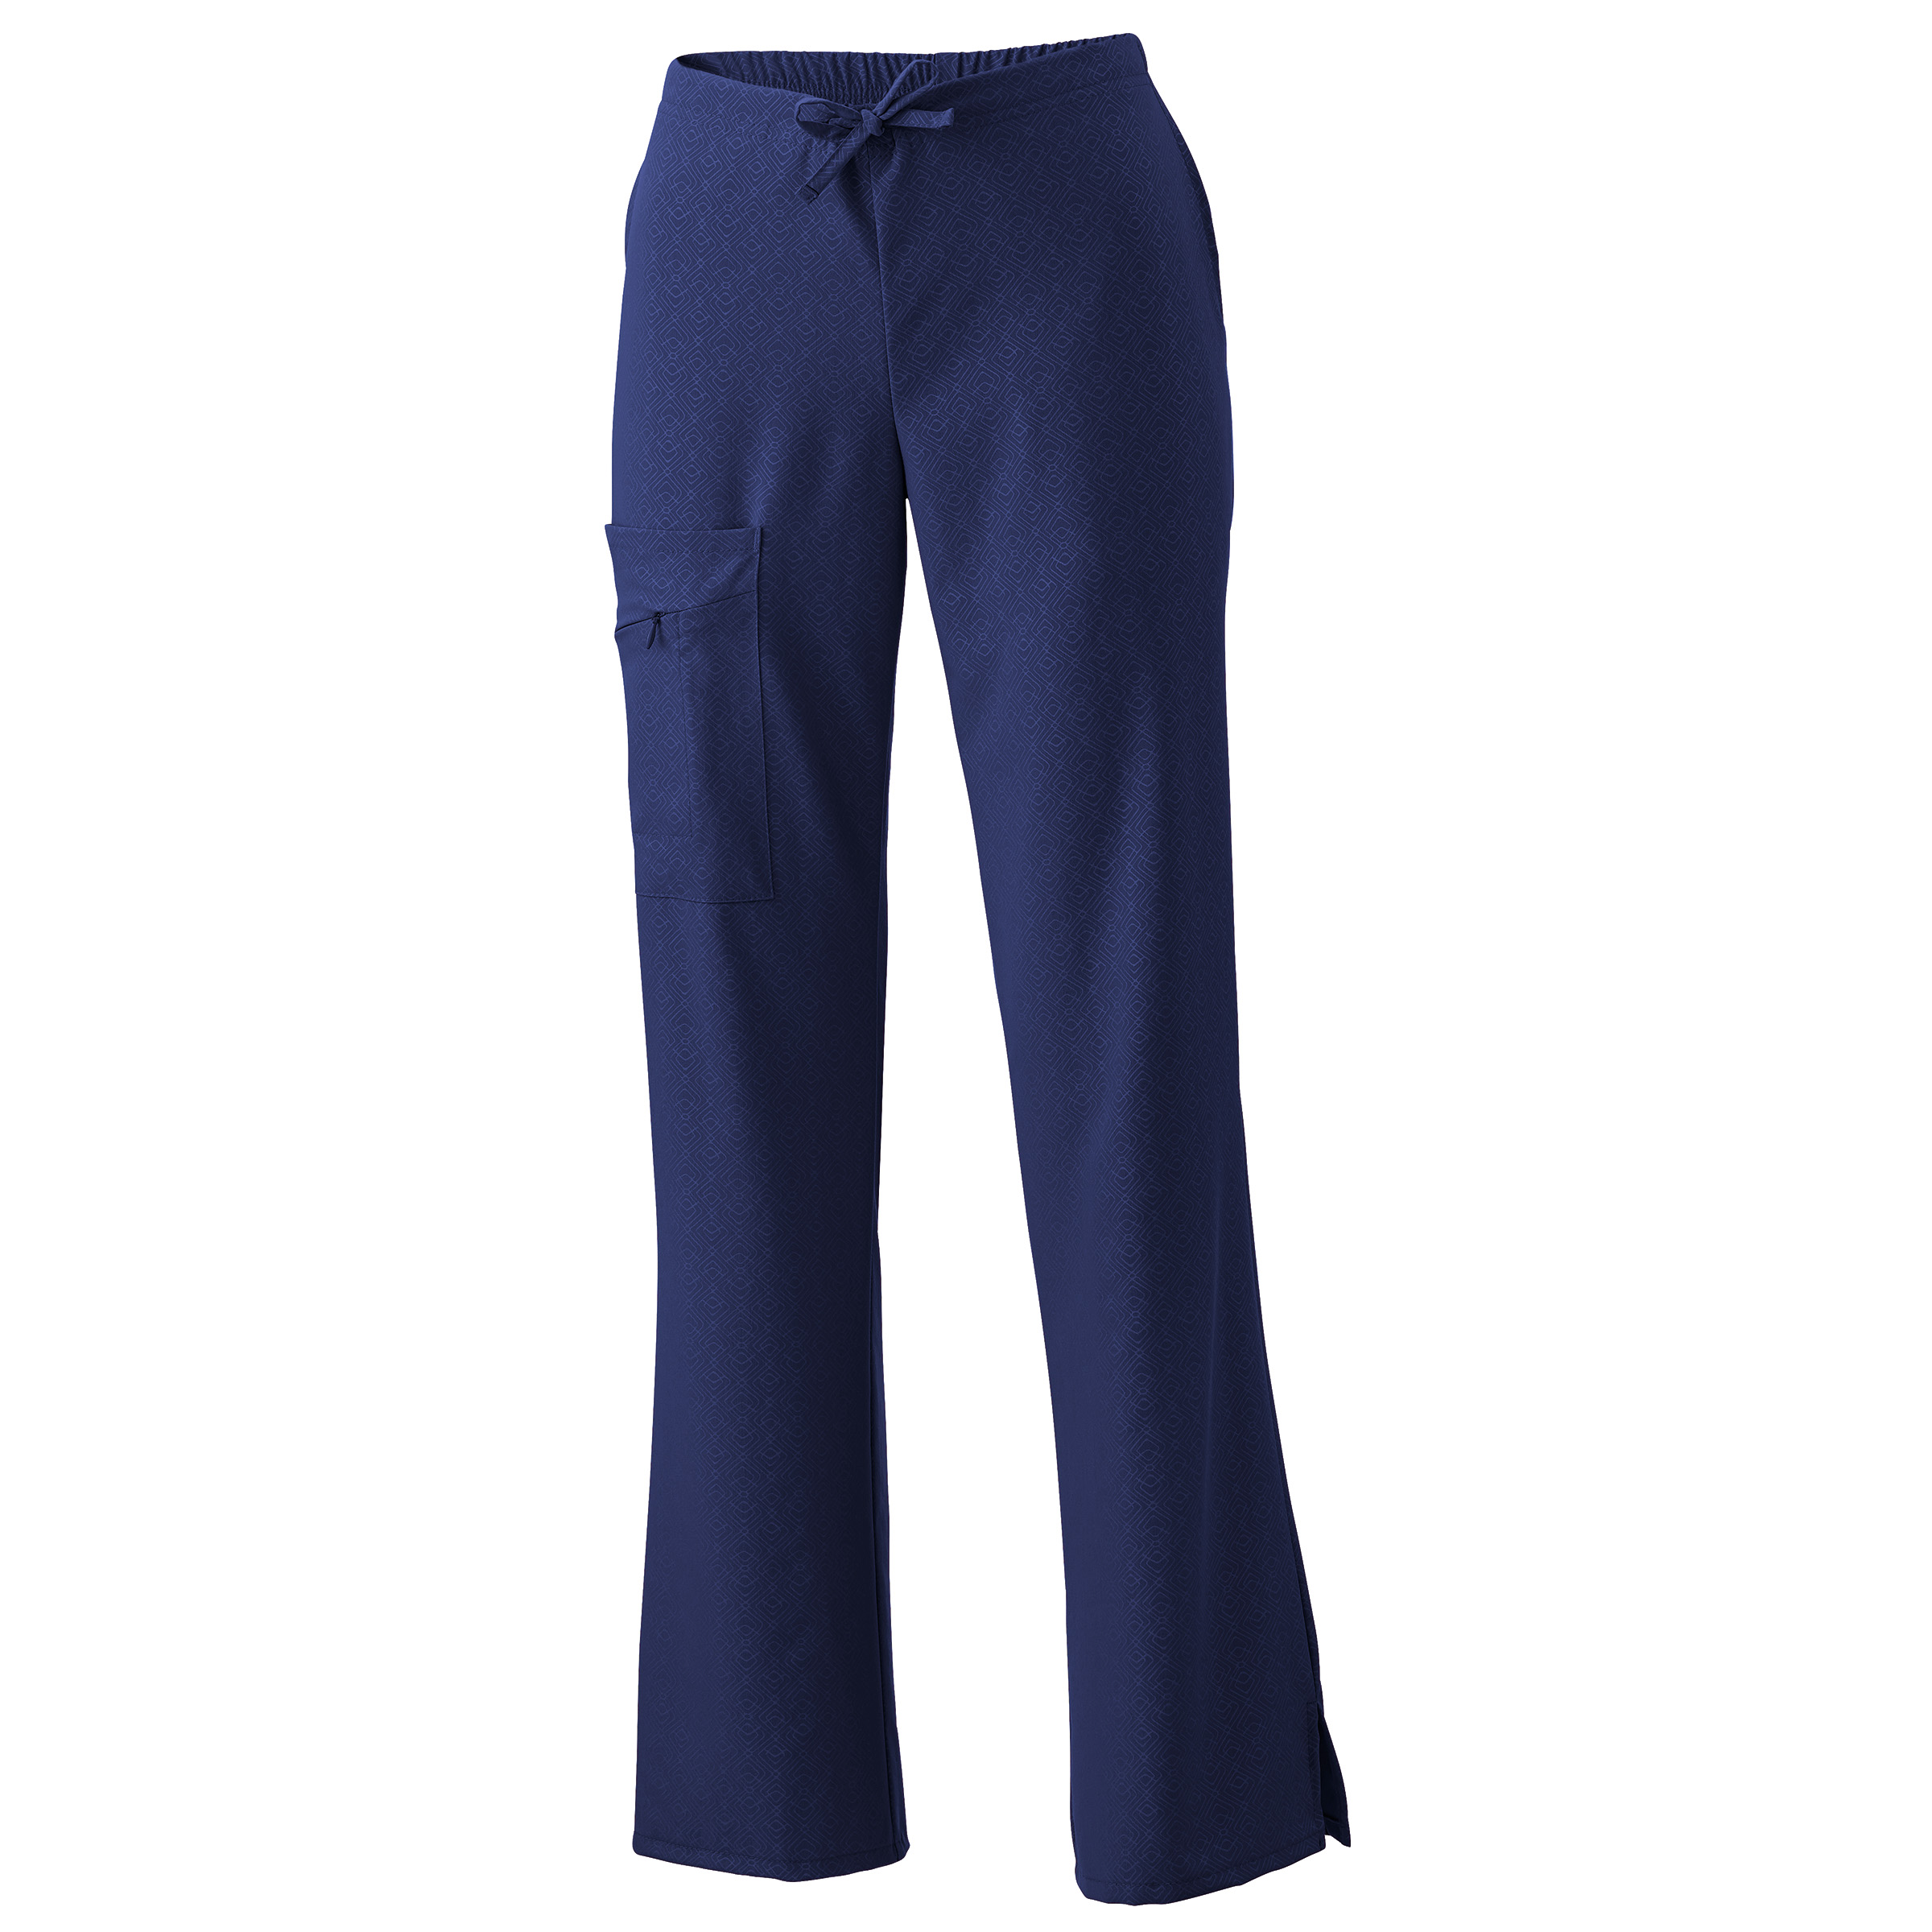 2250 Jockey Ladies Solid Illusion Pant-Jockey Scrubs